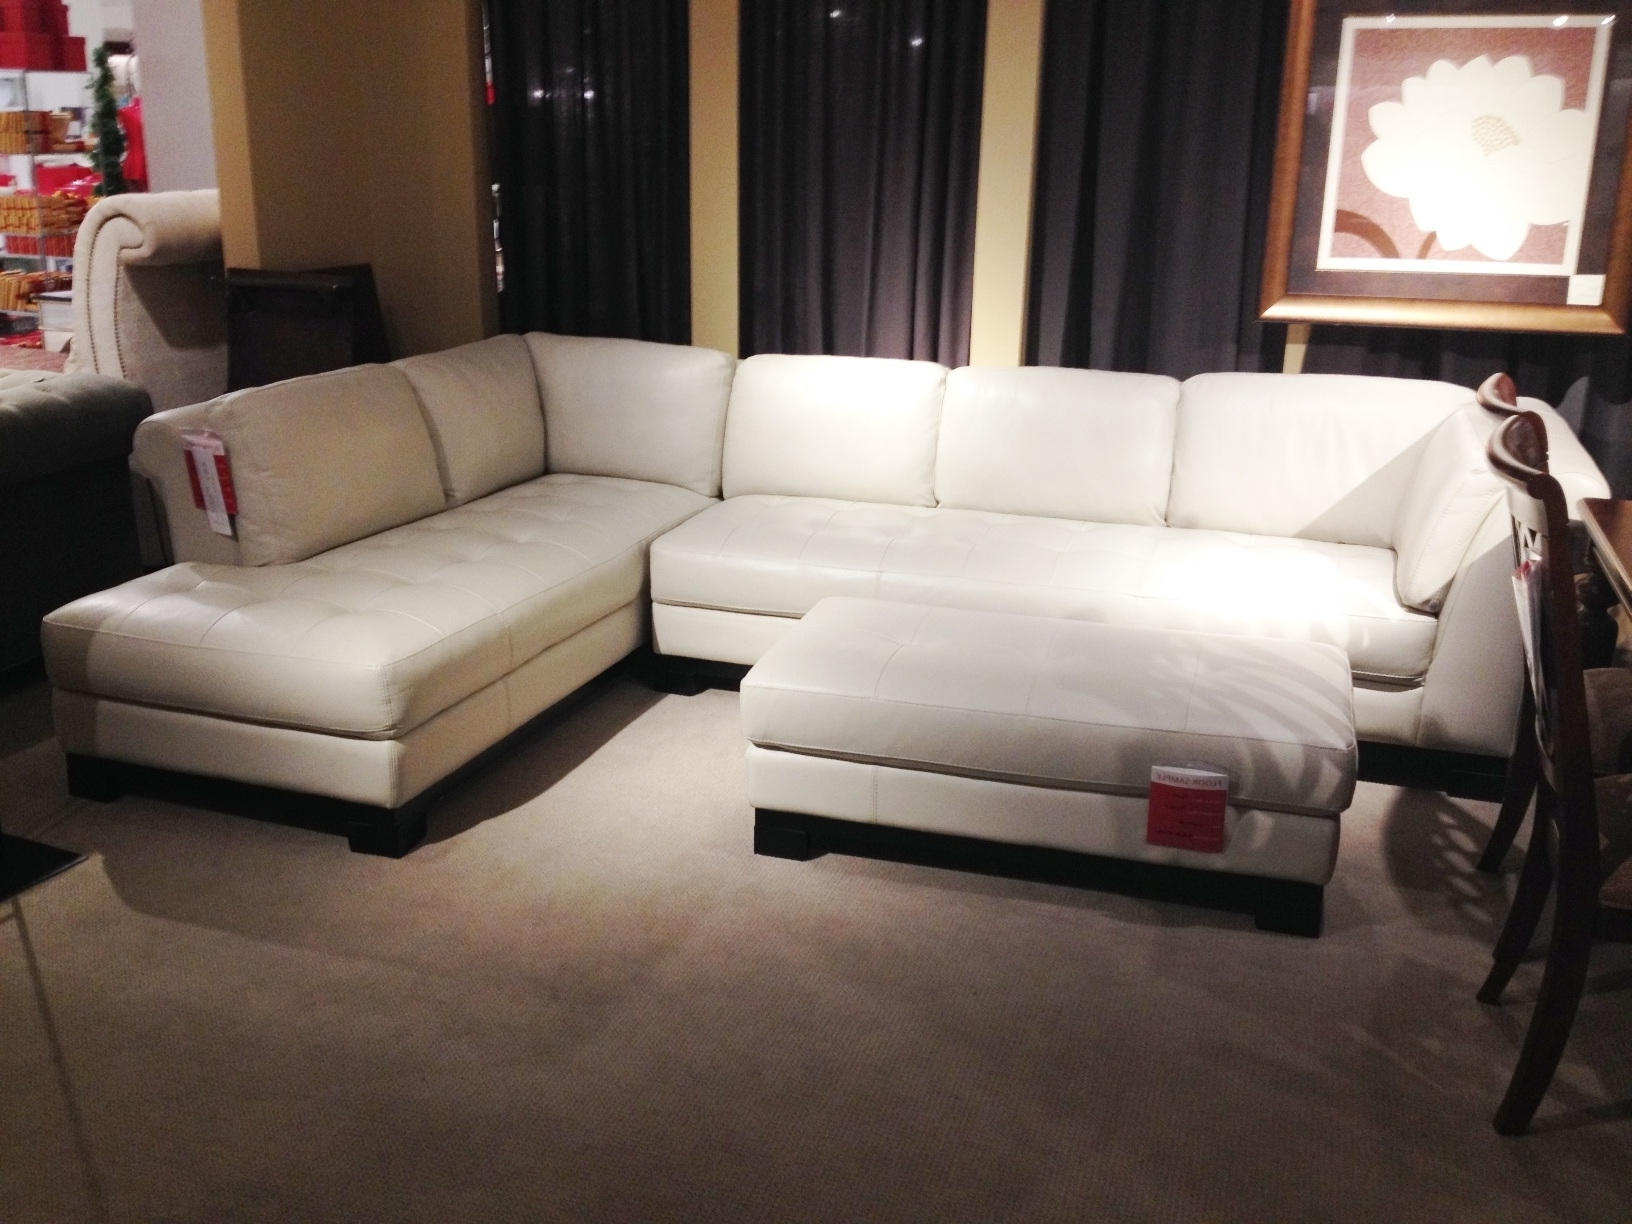 Most Recent White Leather Sectional Sofa Macy's • Leather Sofa Pertaining To Macys Sectional Sofas (View 12 of 15)